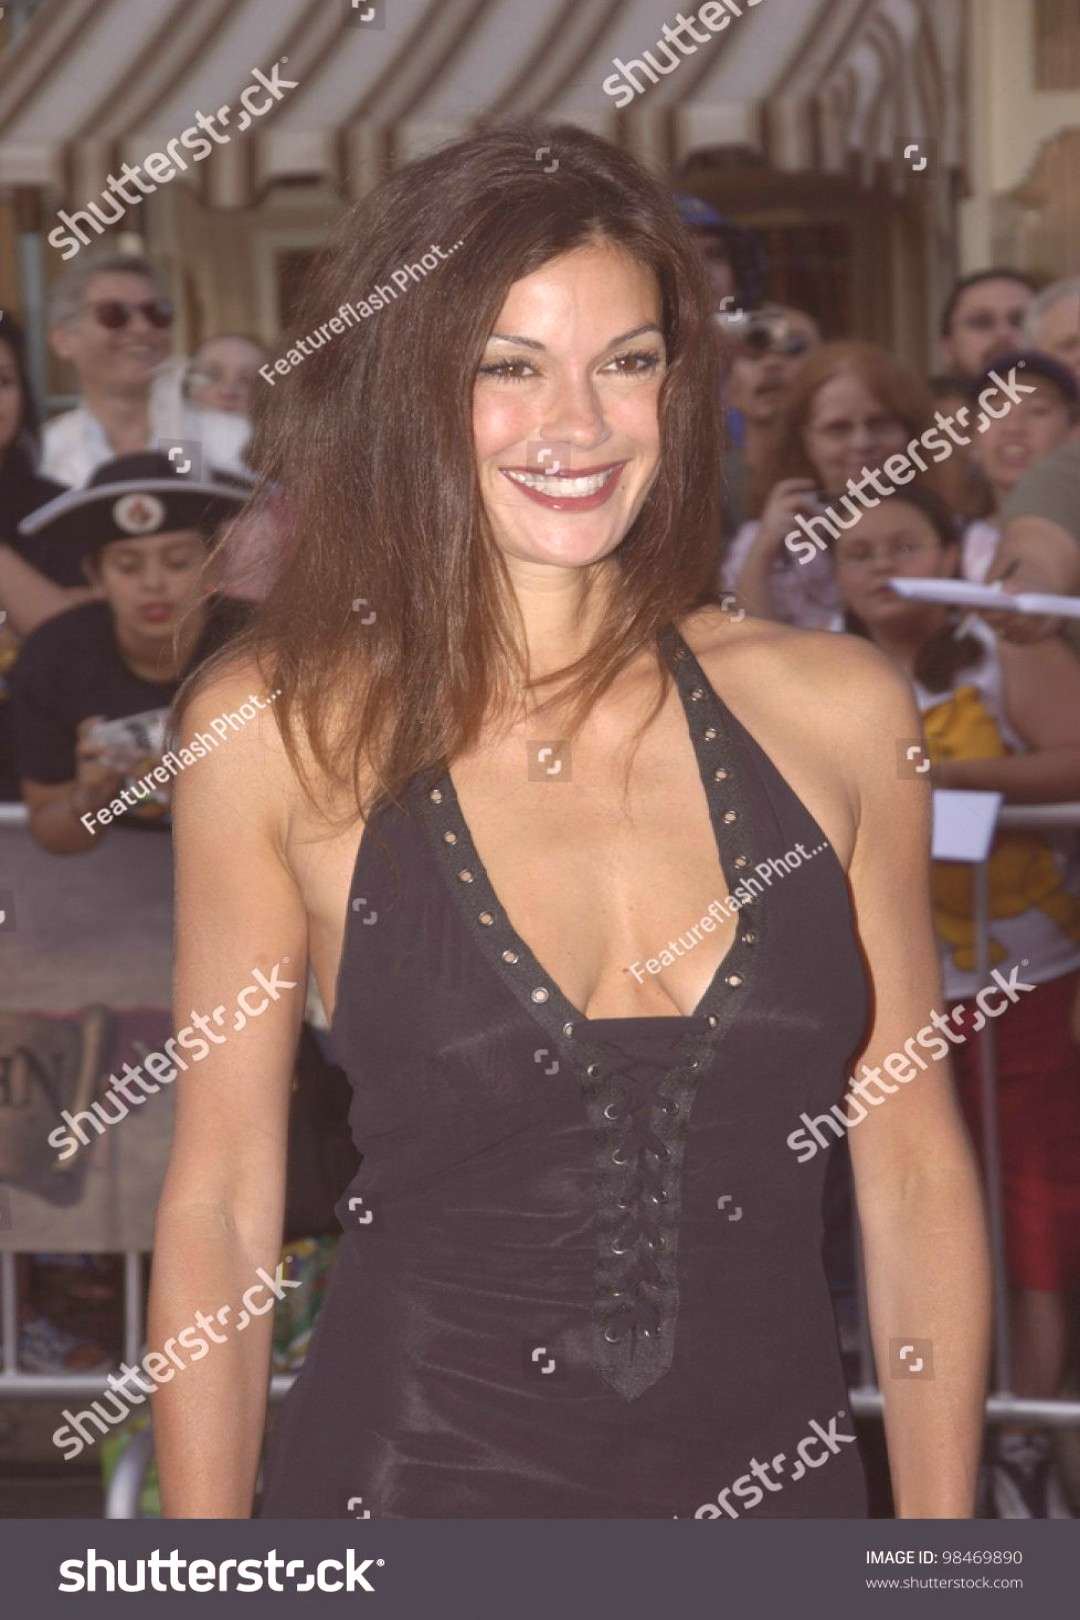 Actress TERI HATCHER at the world premiere of Pirates of the Caribbean The Curse of the Black Pear